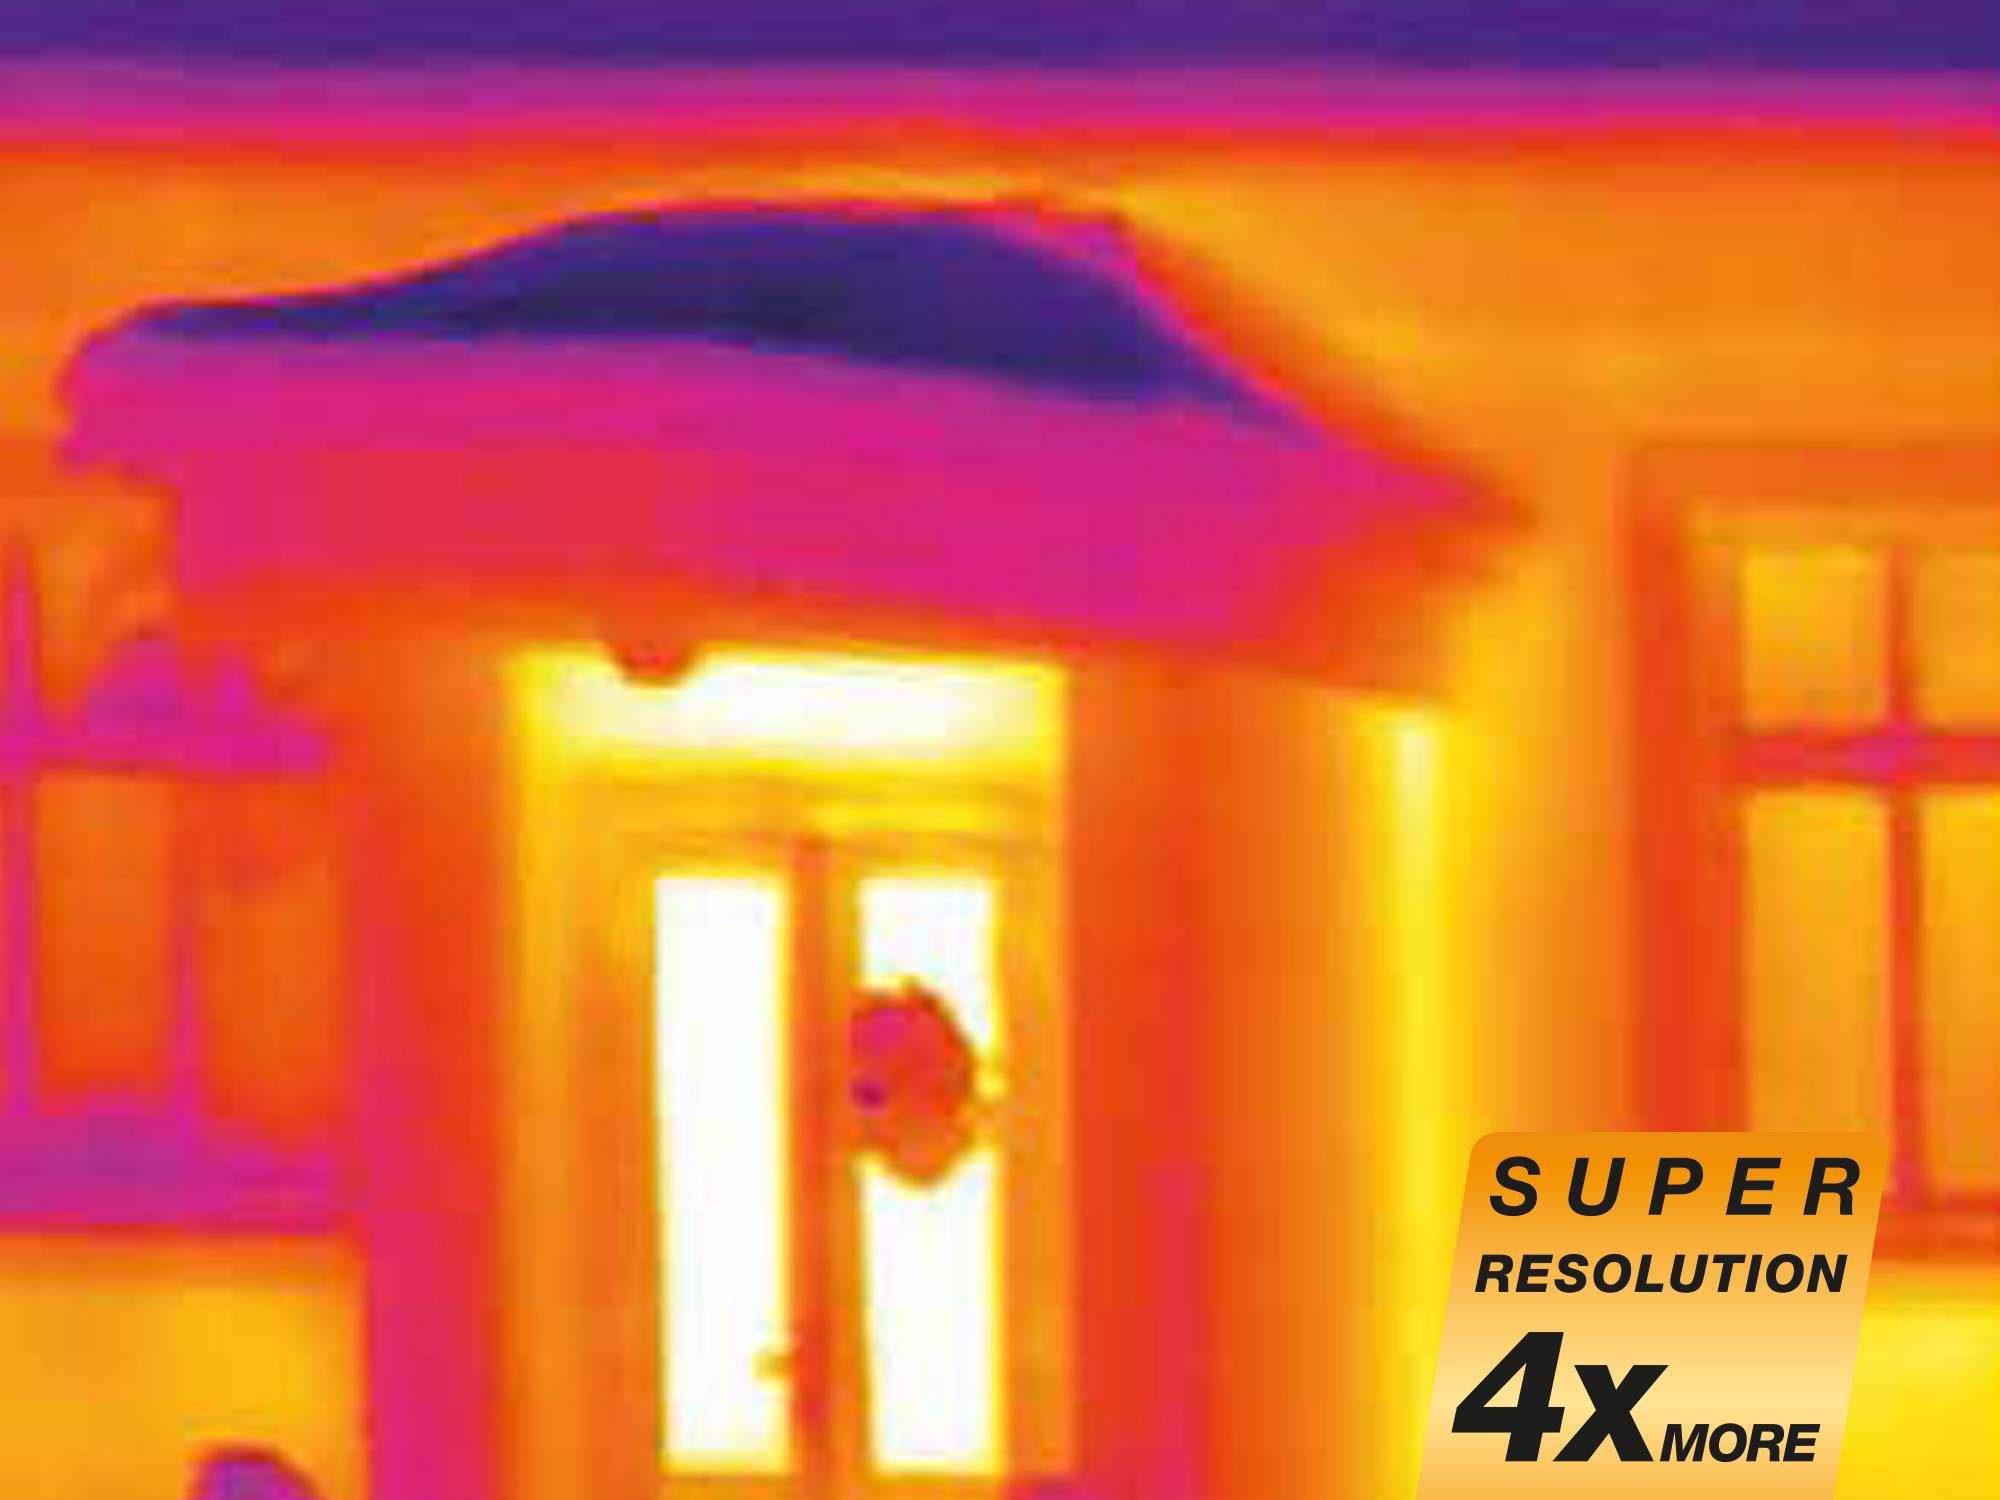 thermography-building-v2-2000x1500.jpg